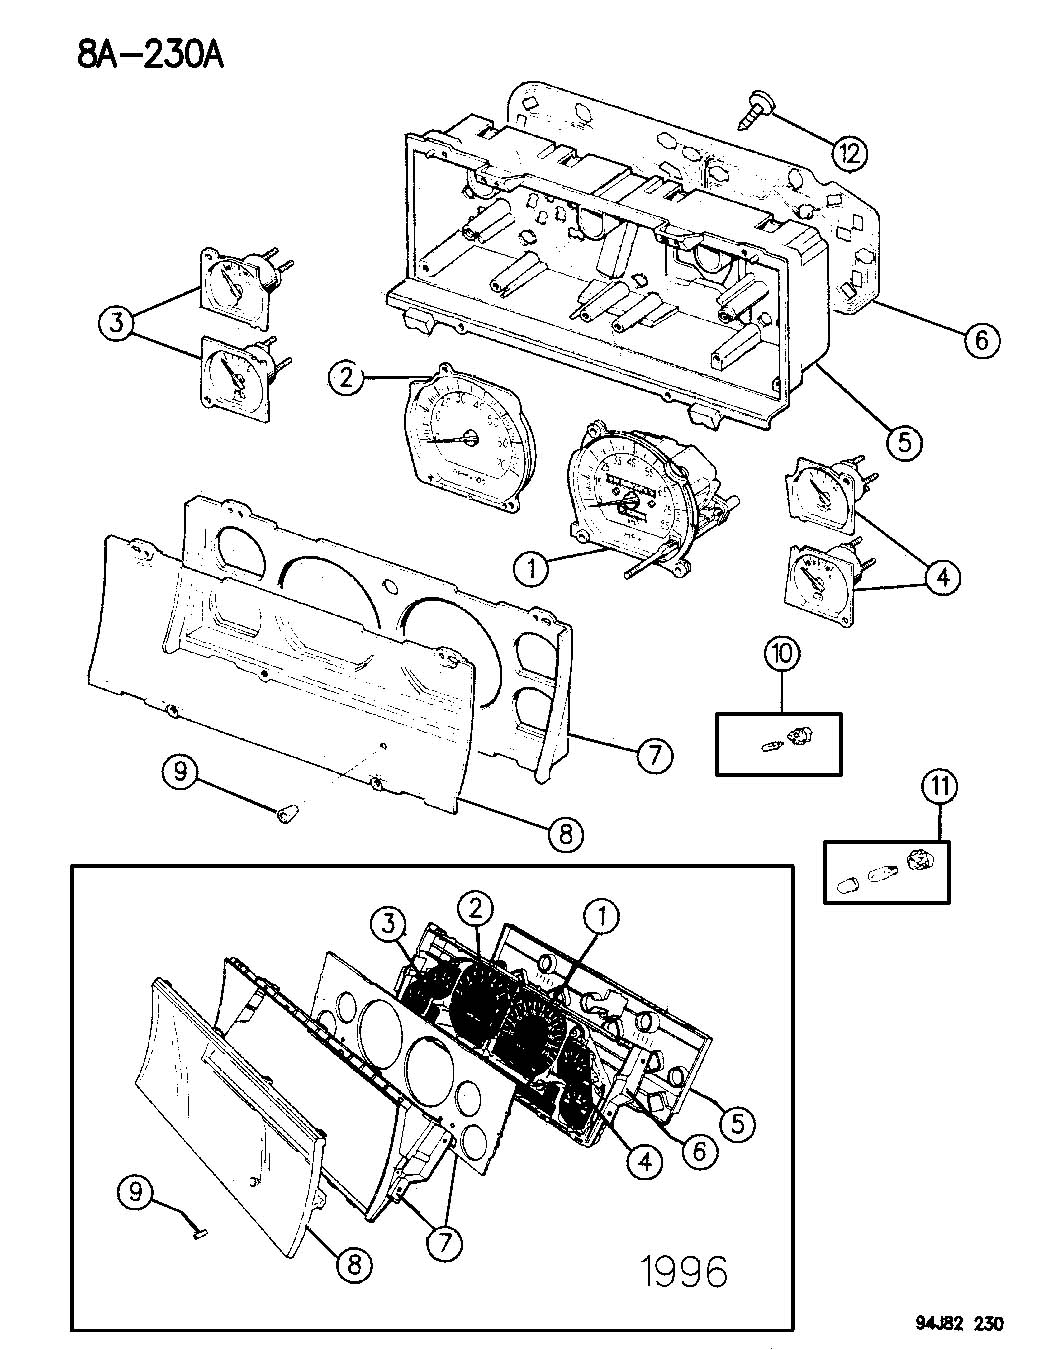 Wiring Diagram Also 1995 Buick Regal Fuse Box 1995 Buick